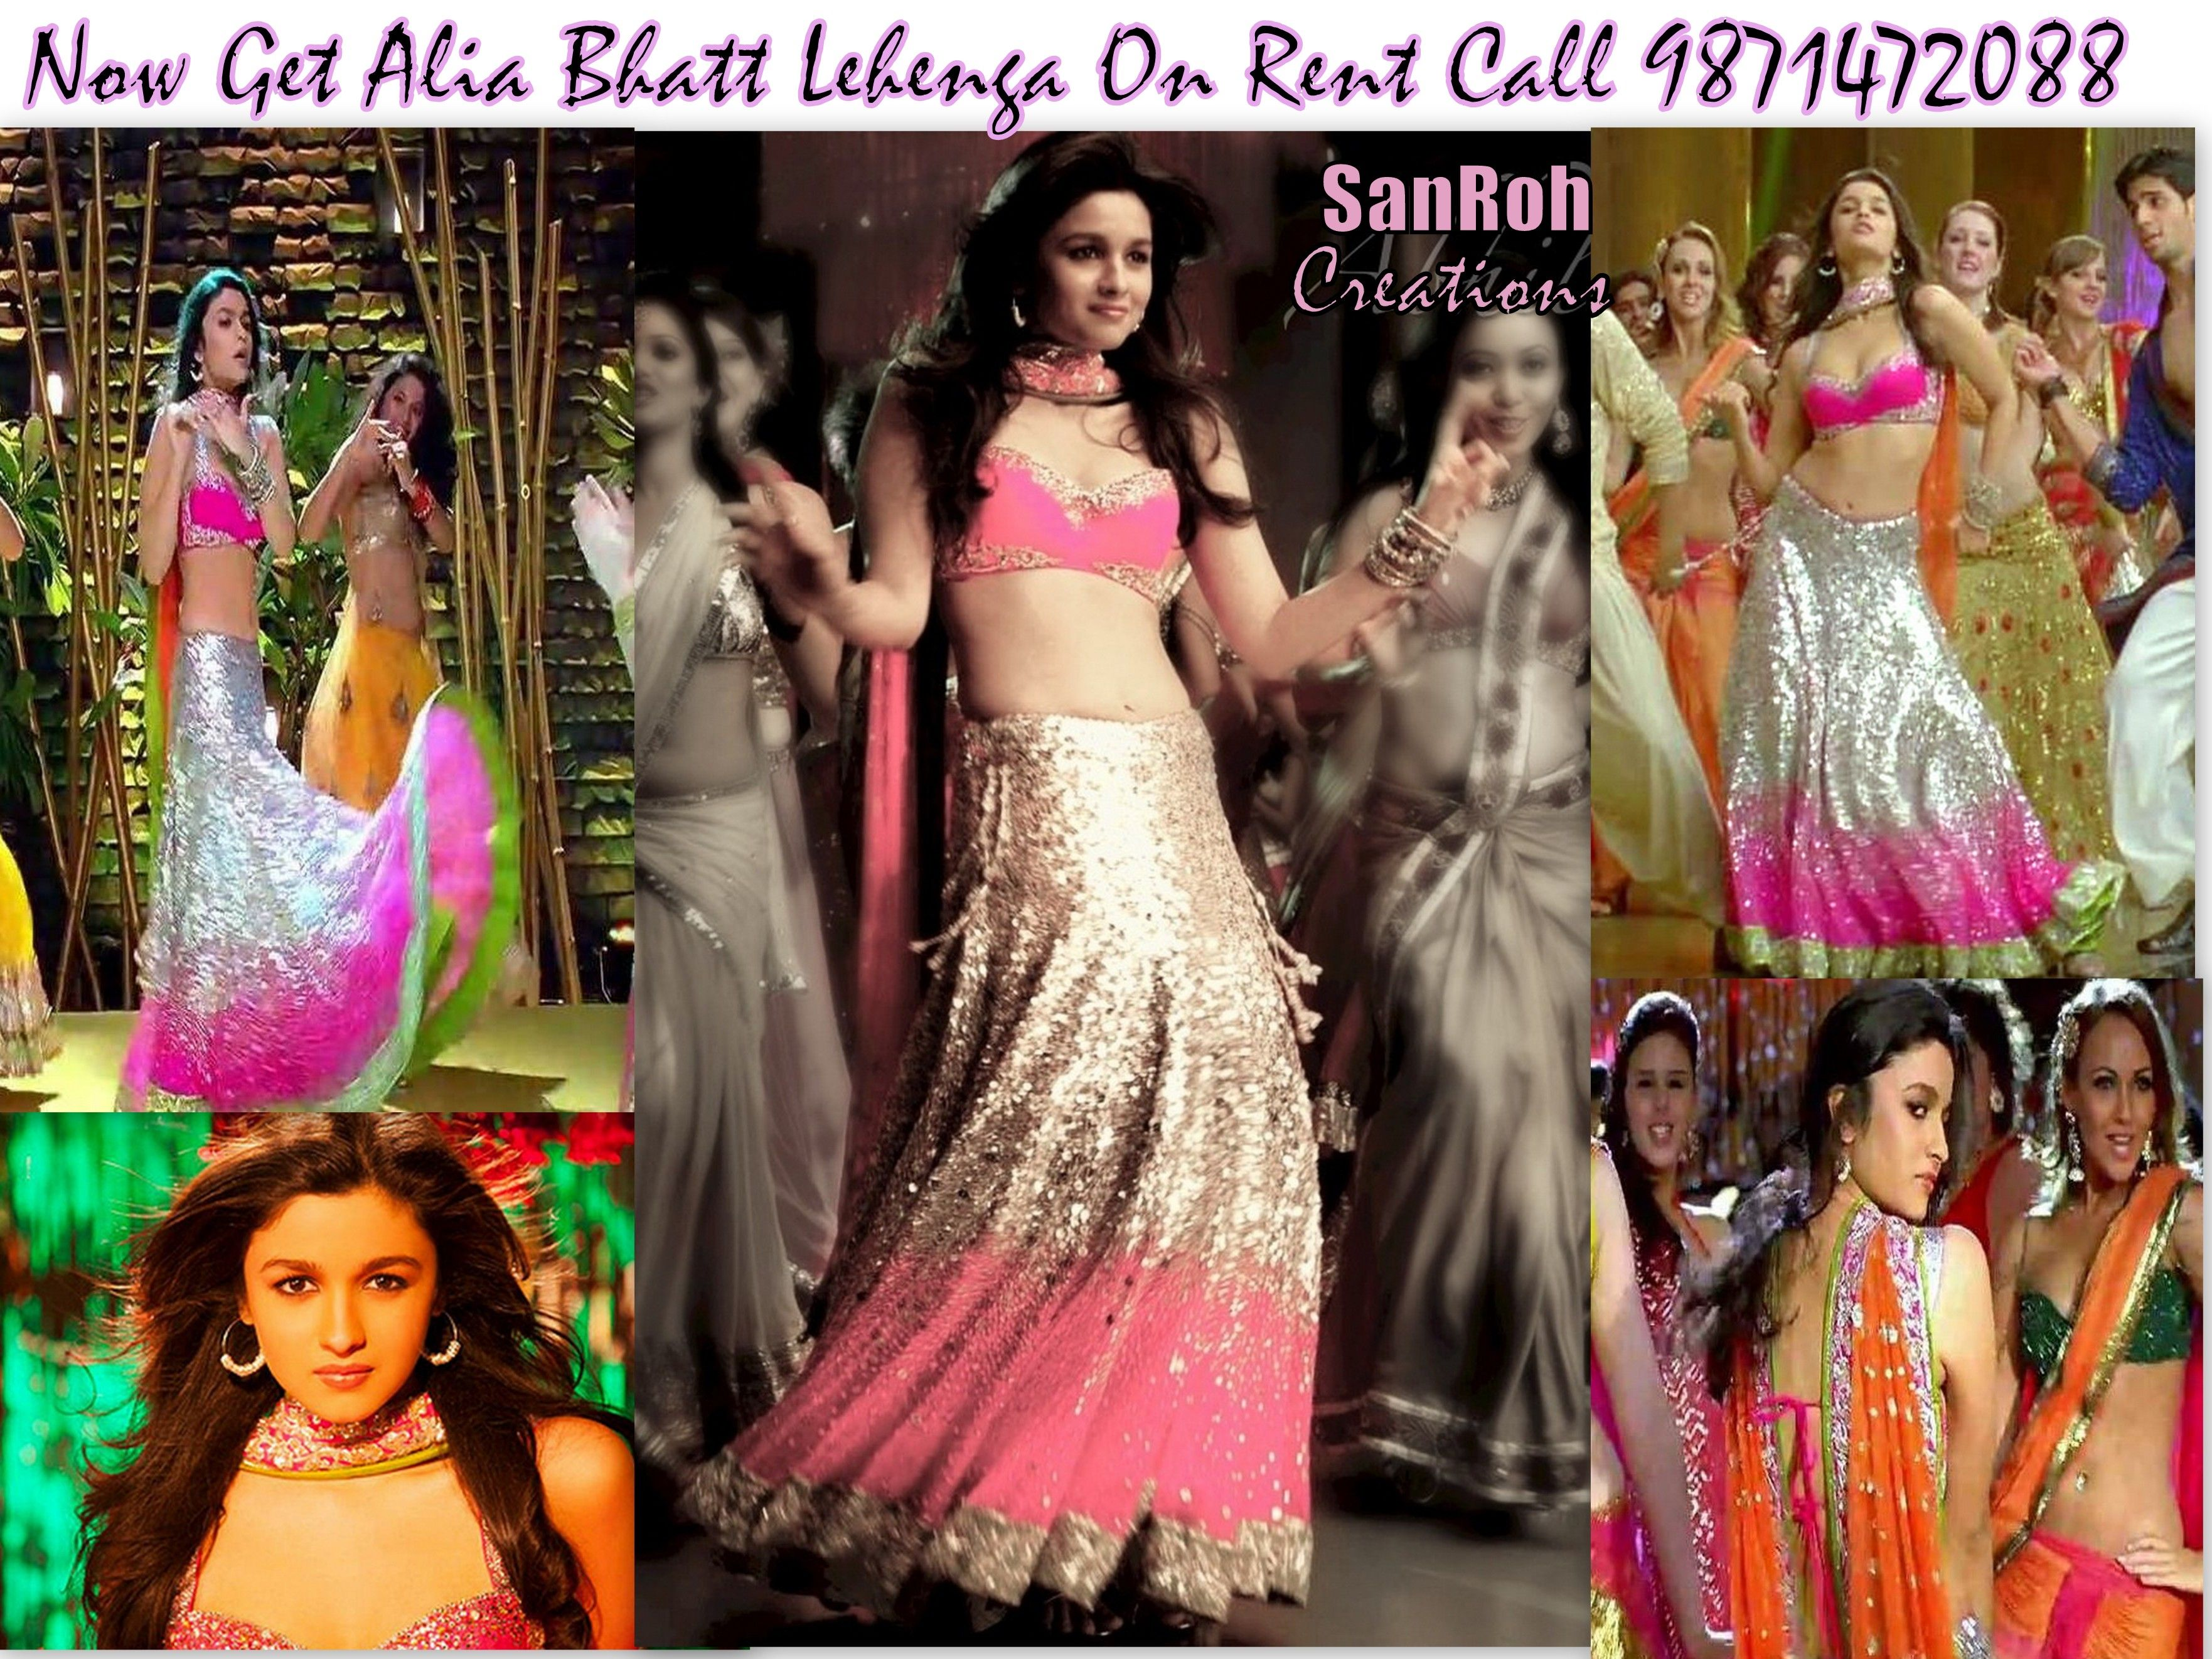 Alia Bhatt Lehenga From Student Of The Year Now Available On Rent Call 9871472088